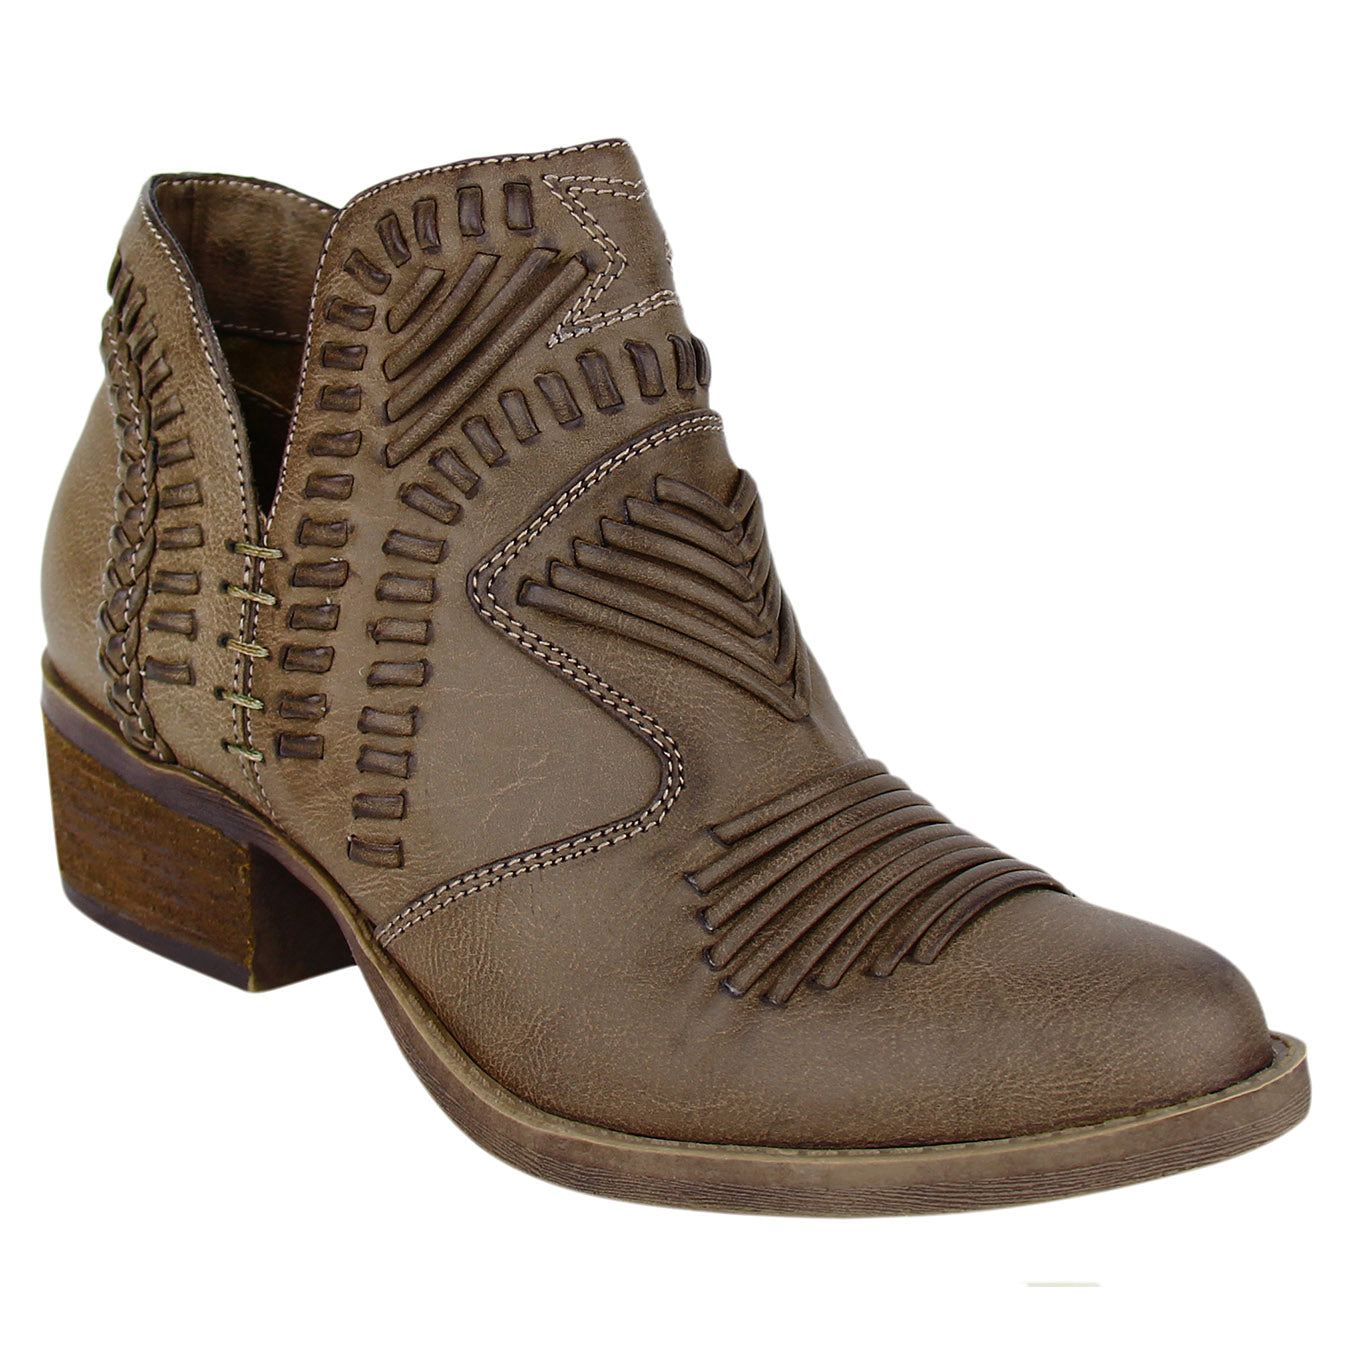 Not_Rated_booties_taupe_stacked-heel_woven_upper_women's_best_seller